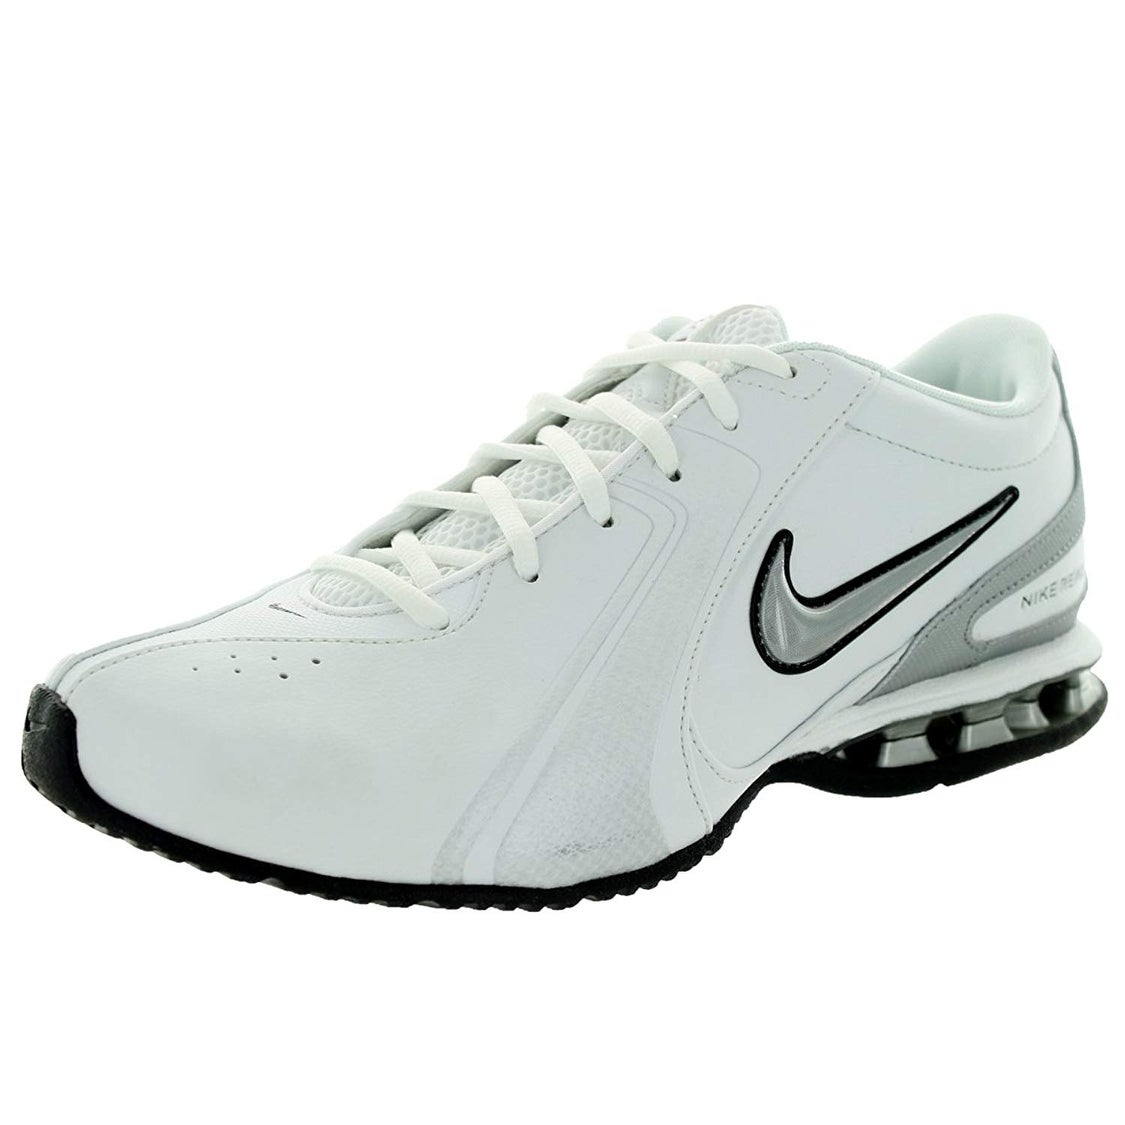 9506c98069b Casual Nike Men s Shoes